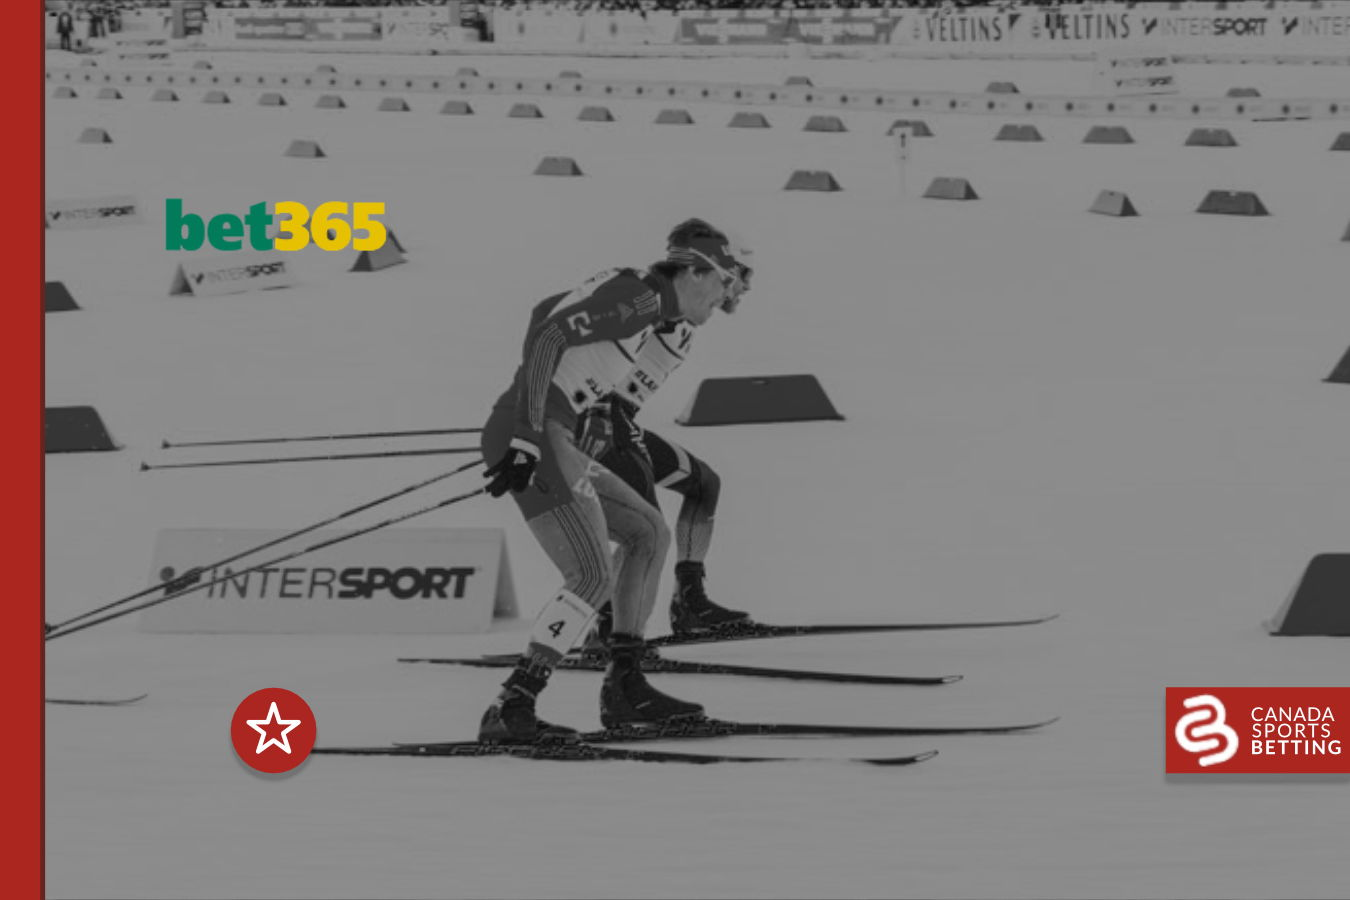 Winter Sports Markets offered at Bet365